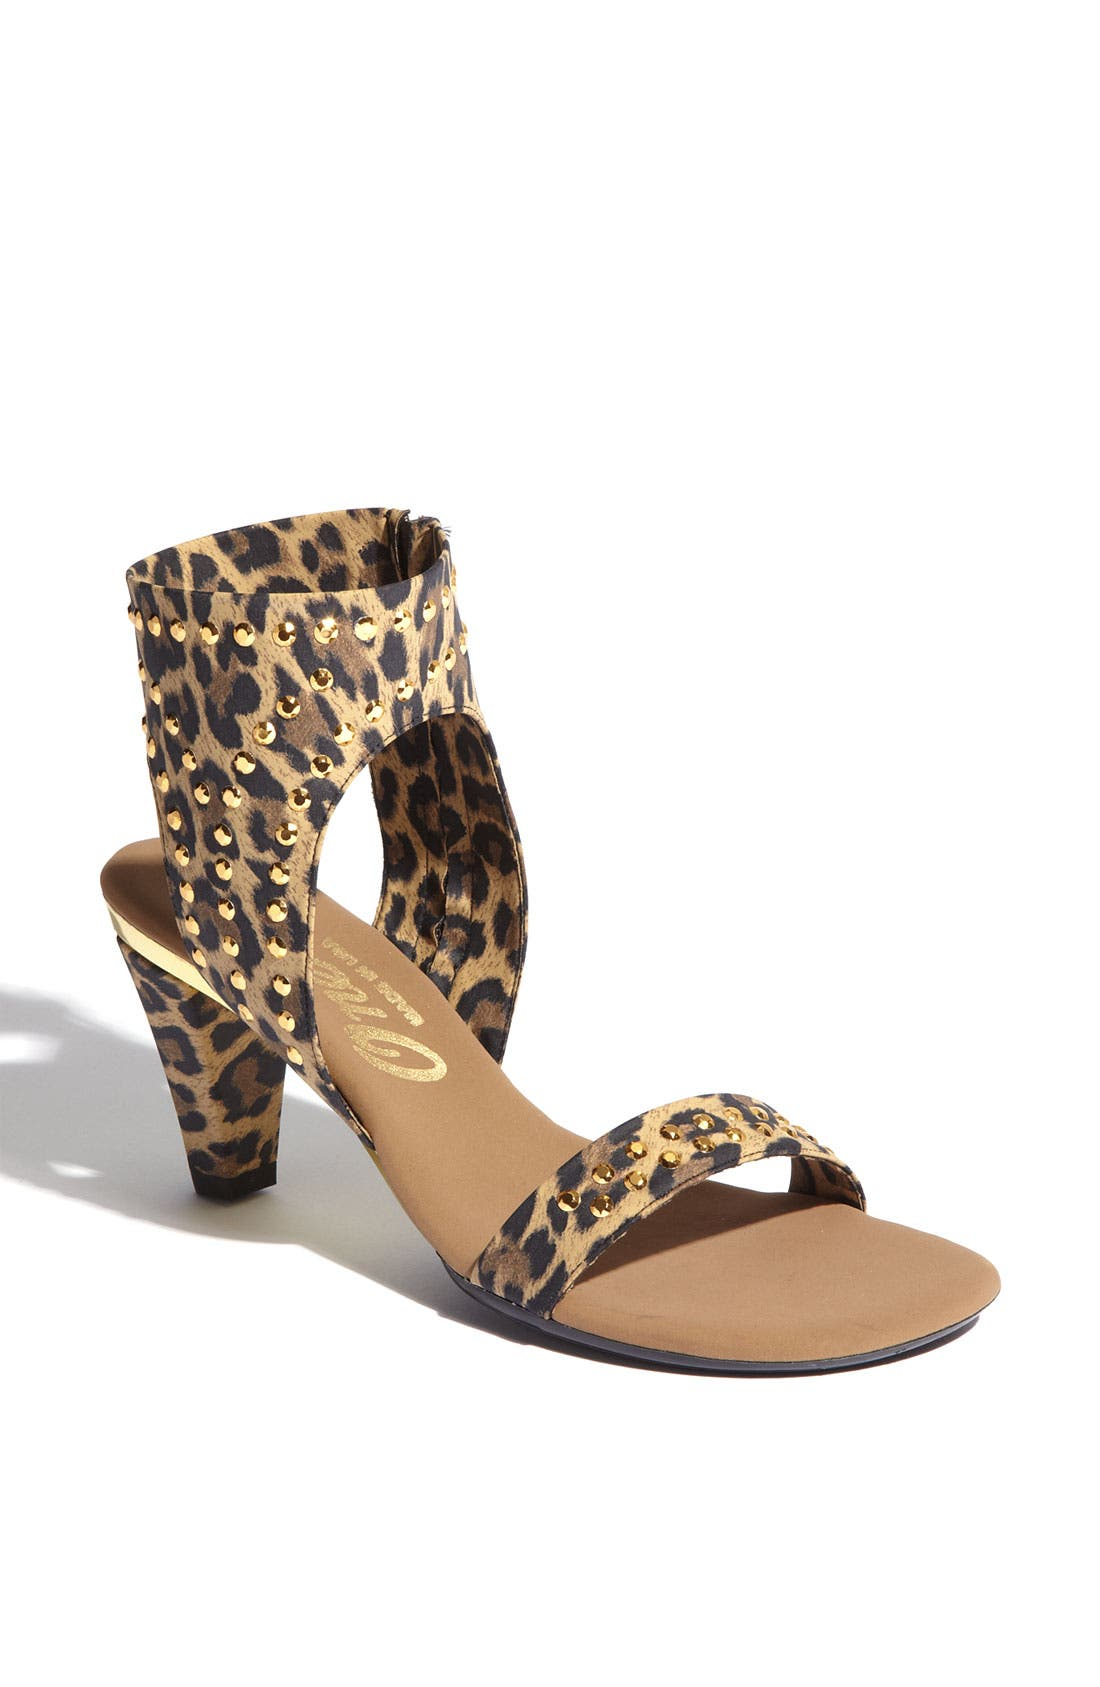 Alternate Image 1 Selected - Onex 'Showgirl' Sandal